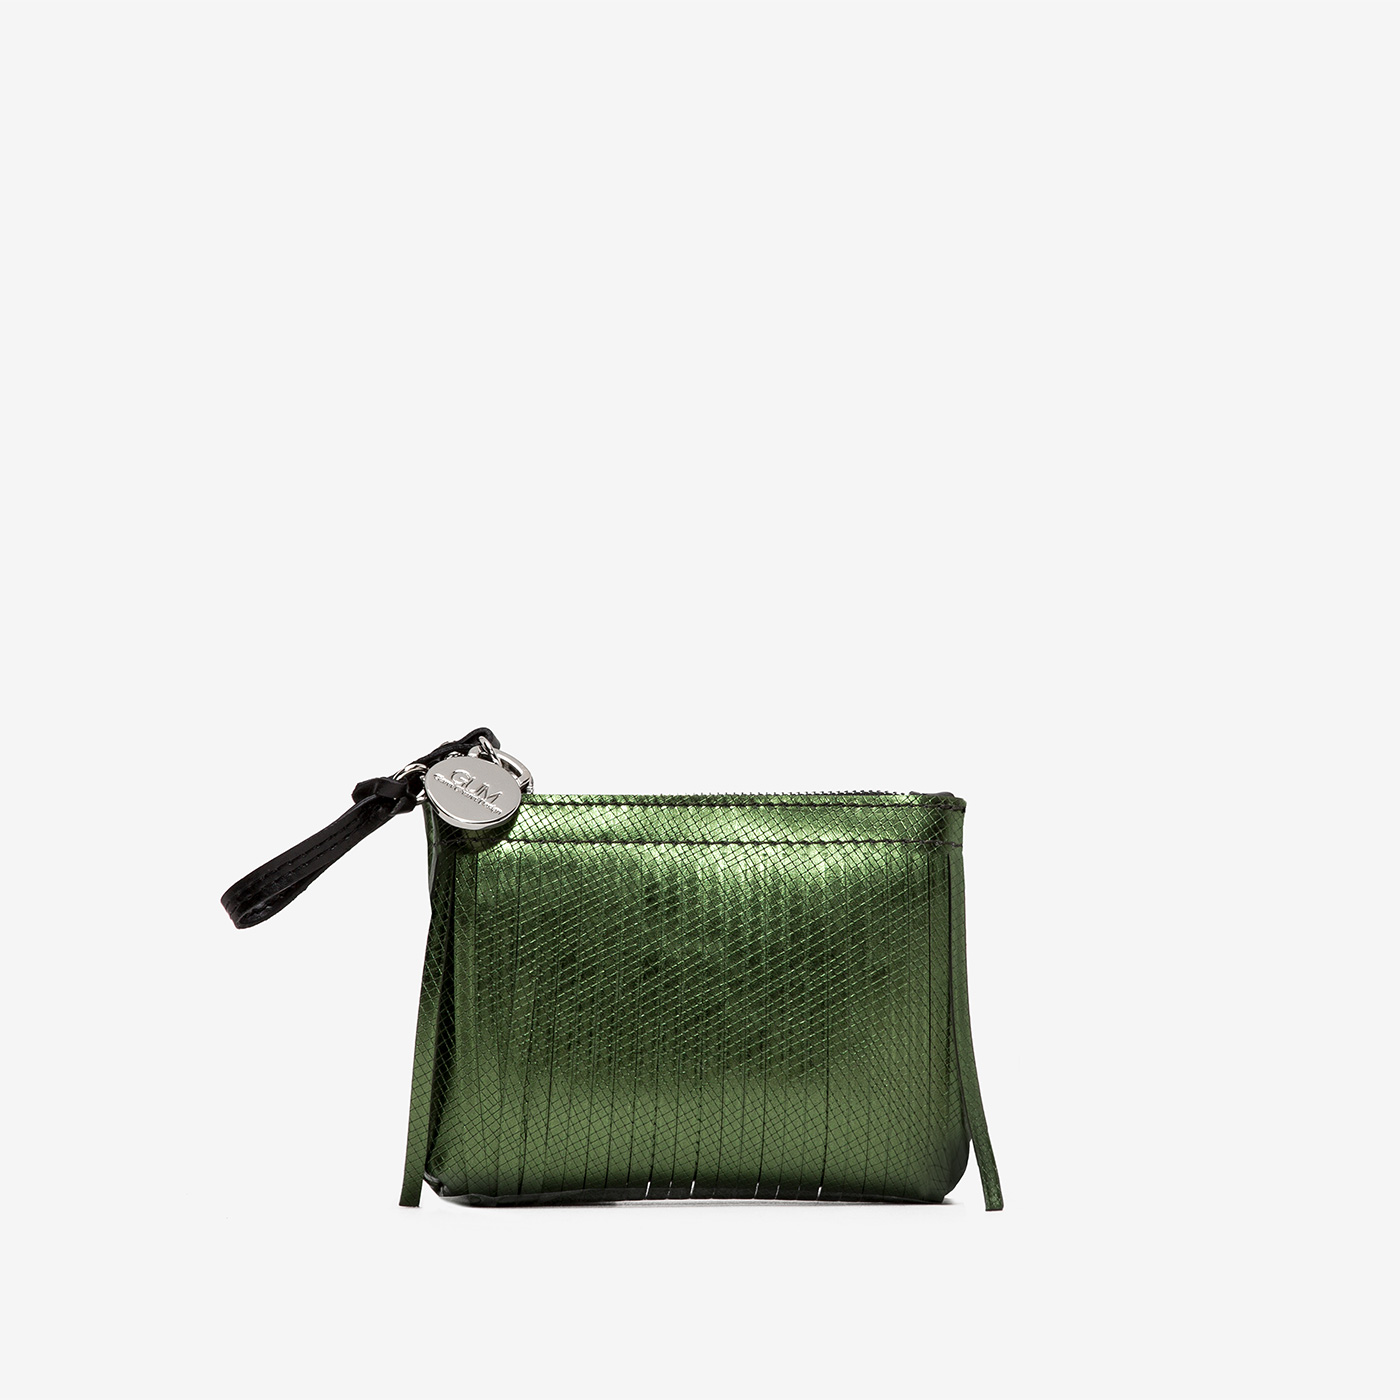 GUM: CLUTCH BAG KEYRING WITH FRINGES